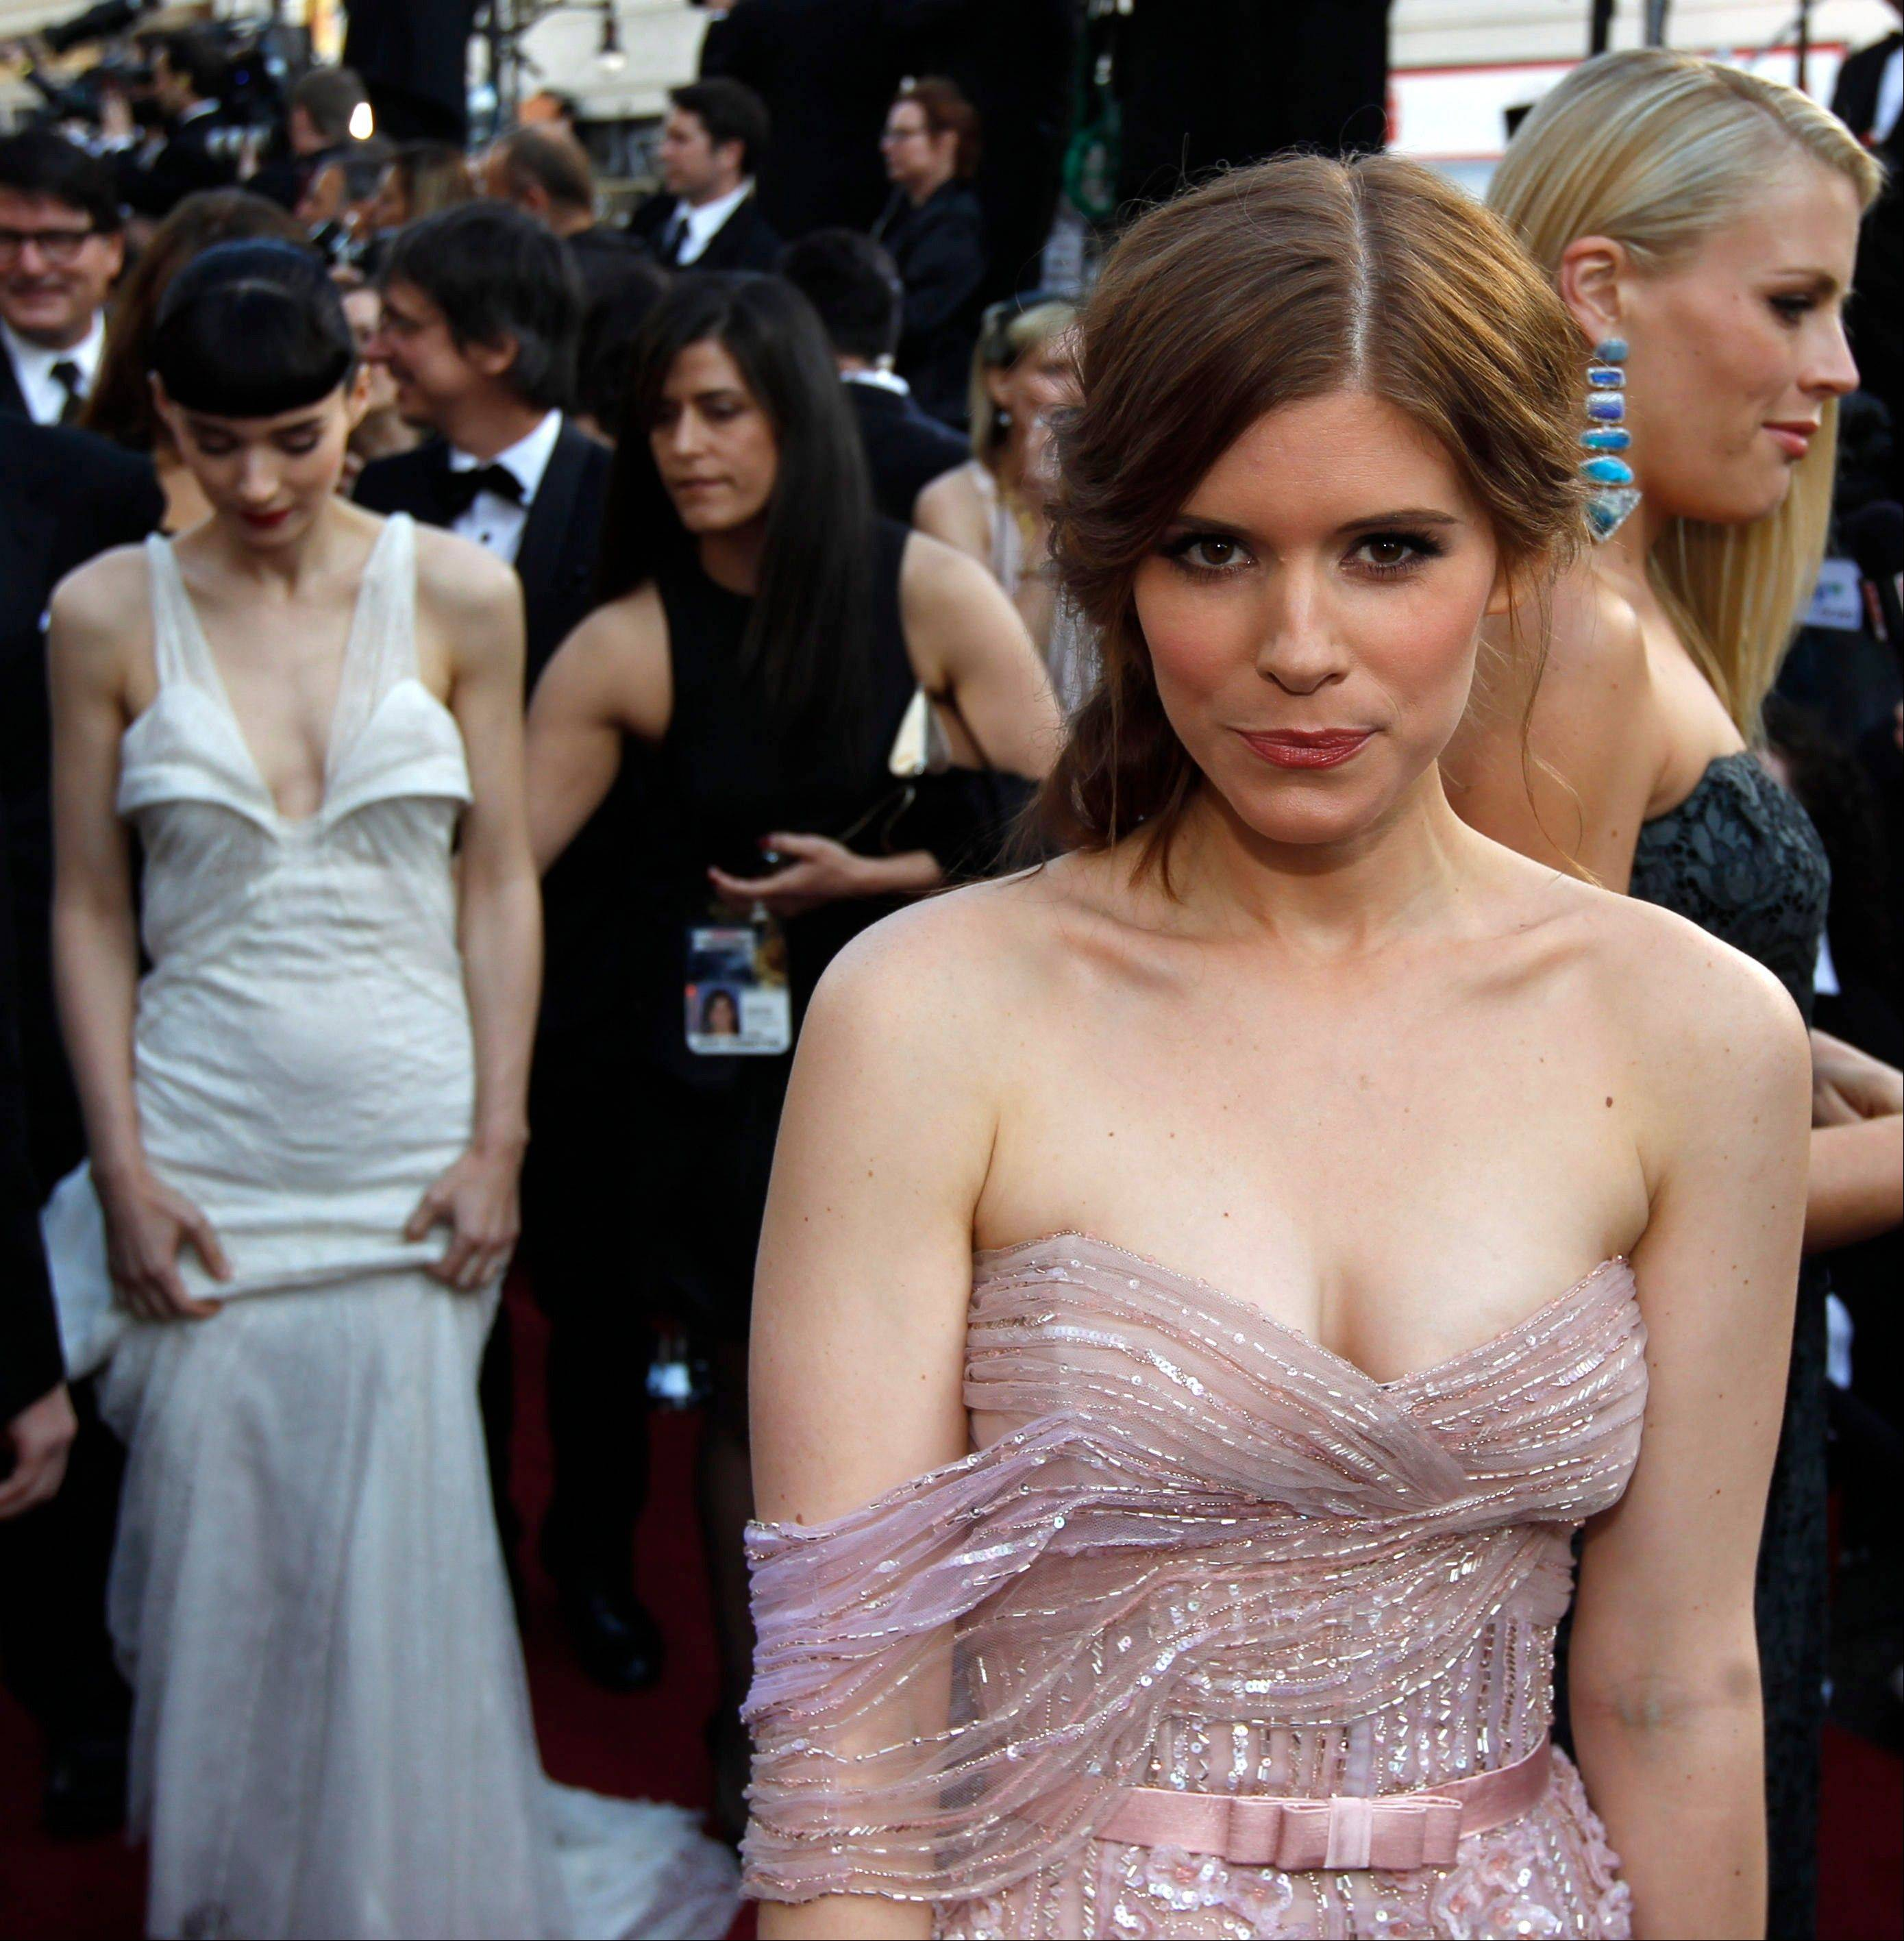 Kate Mara arrives doe the 84th Academy Awards on Sunday. In background at left is her sister Rooney Mara.